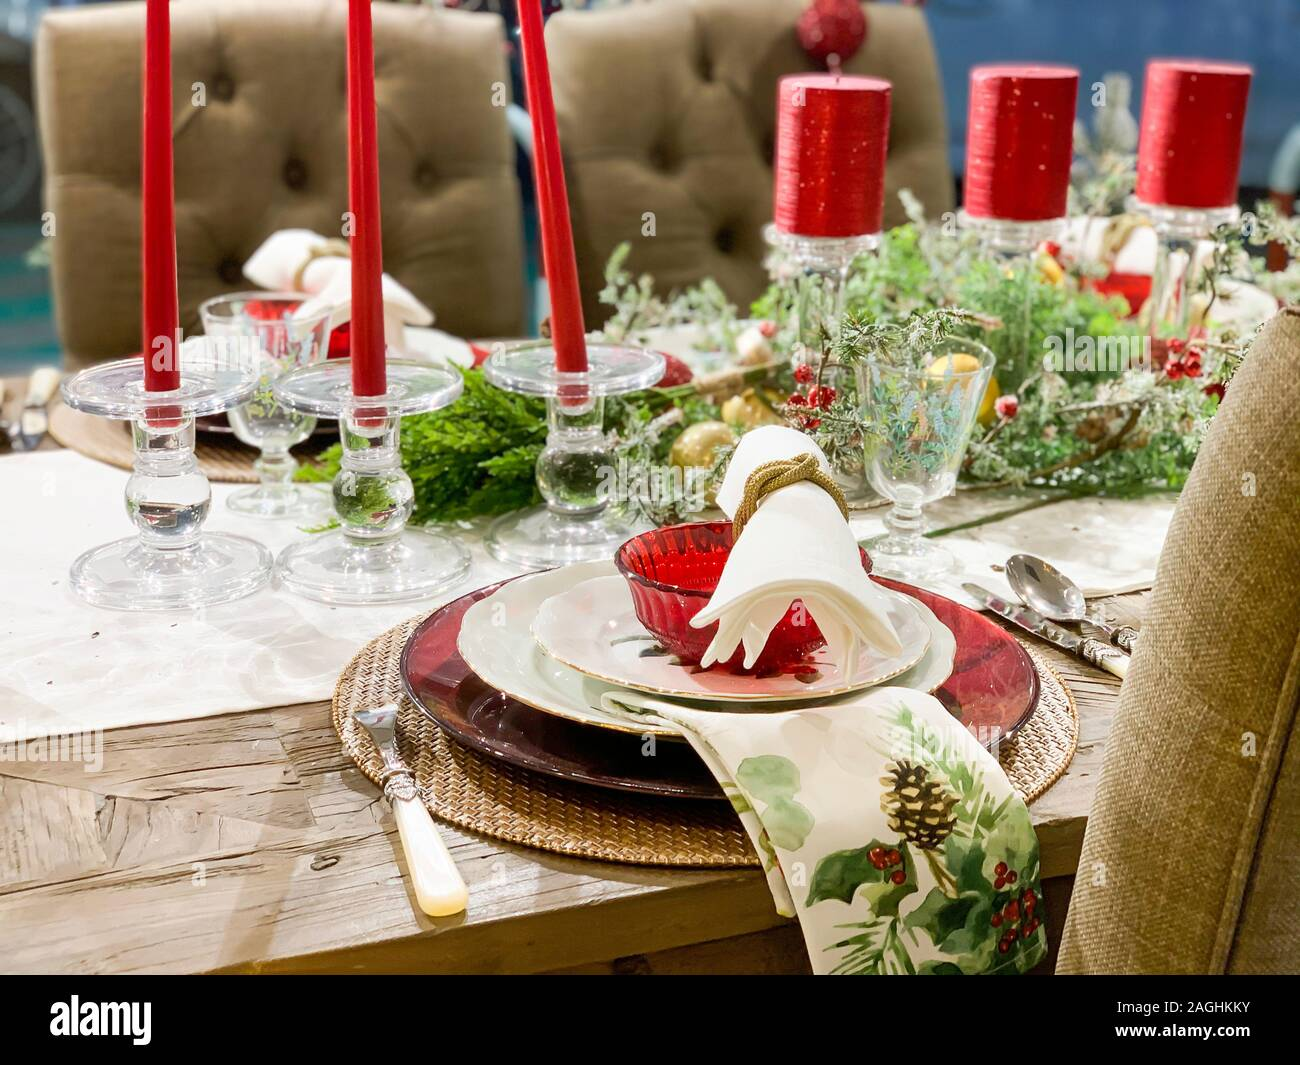 Elegant Christmas Dinner Table Decoration With Dishes Glasses And Candles Stock Photo Alamy